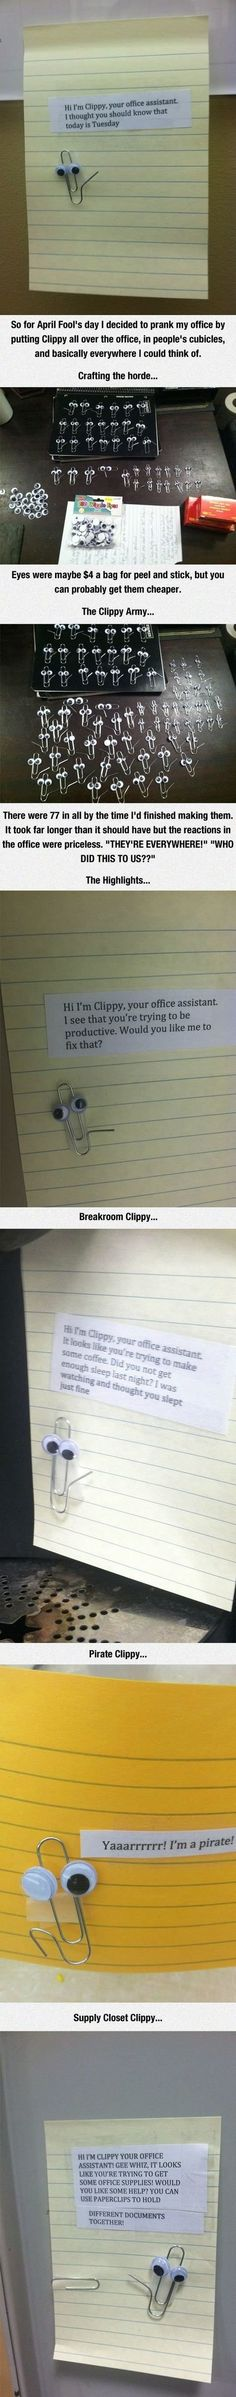 The Clippy Prank